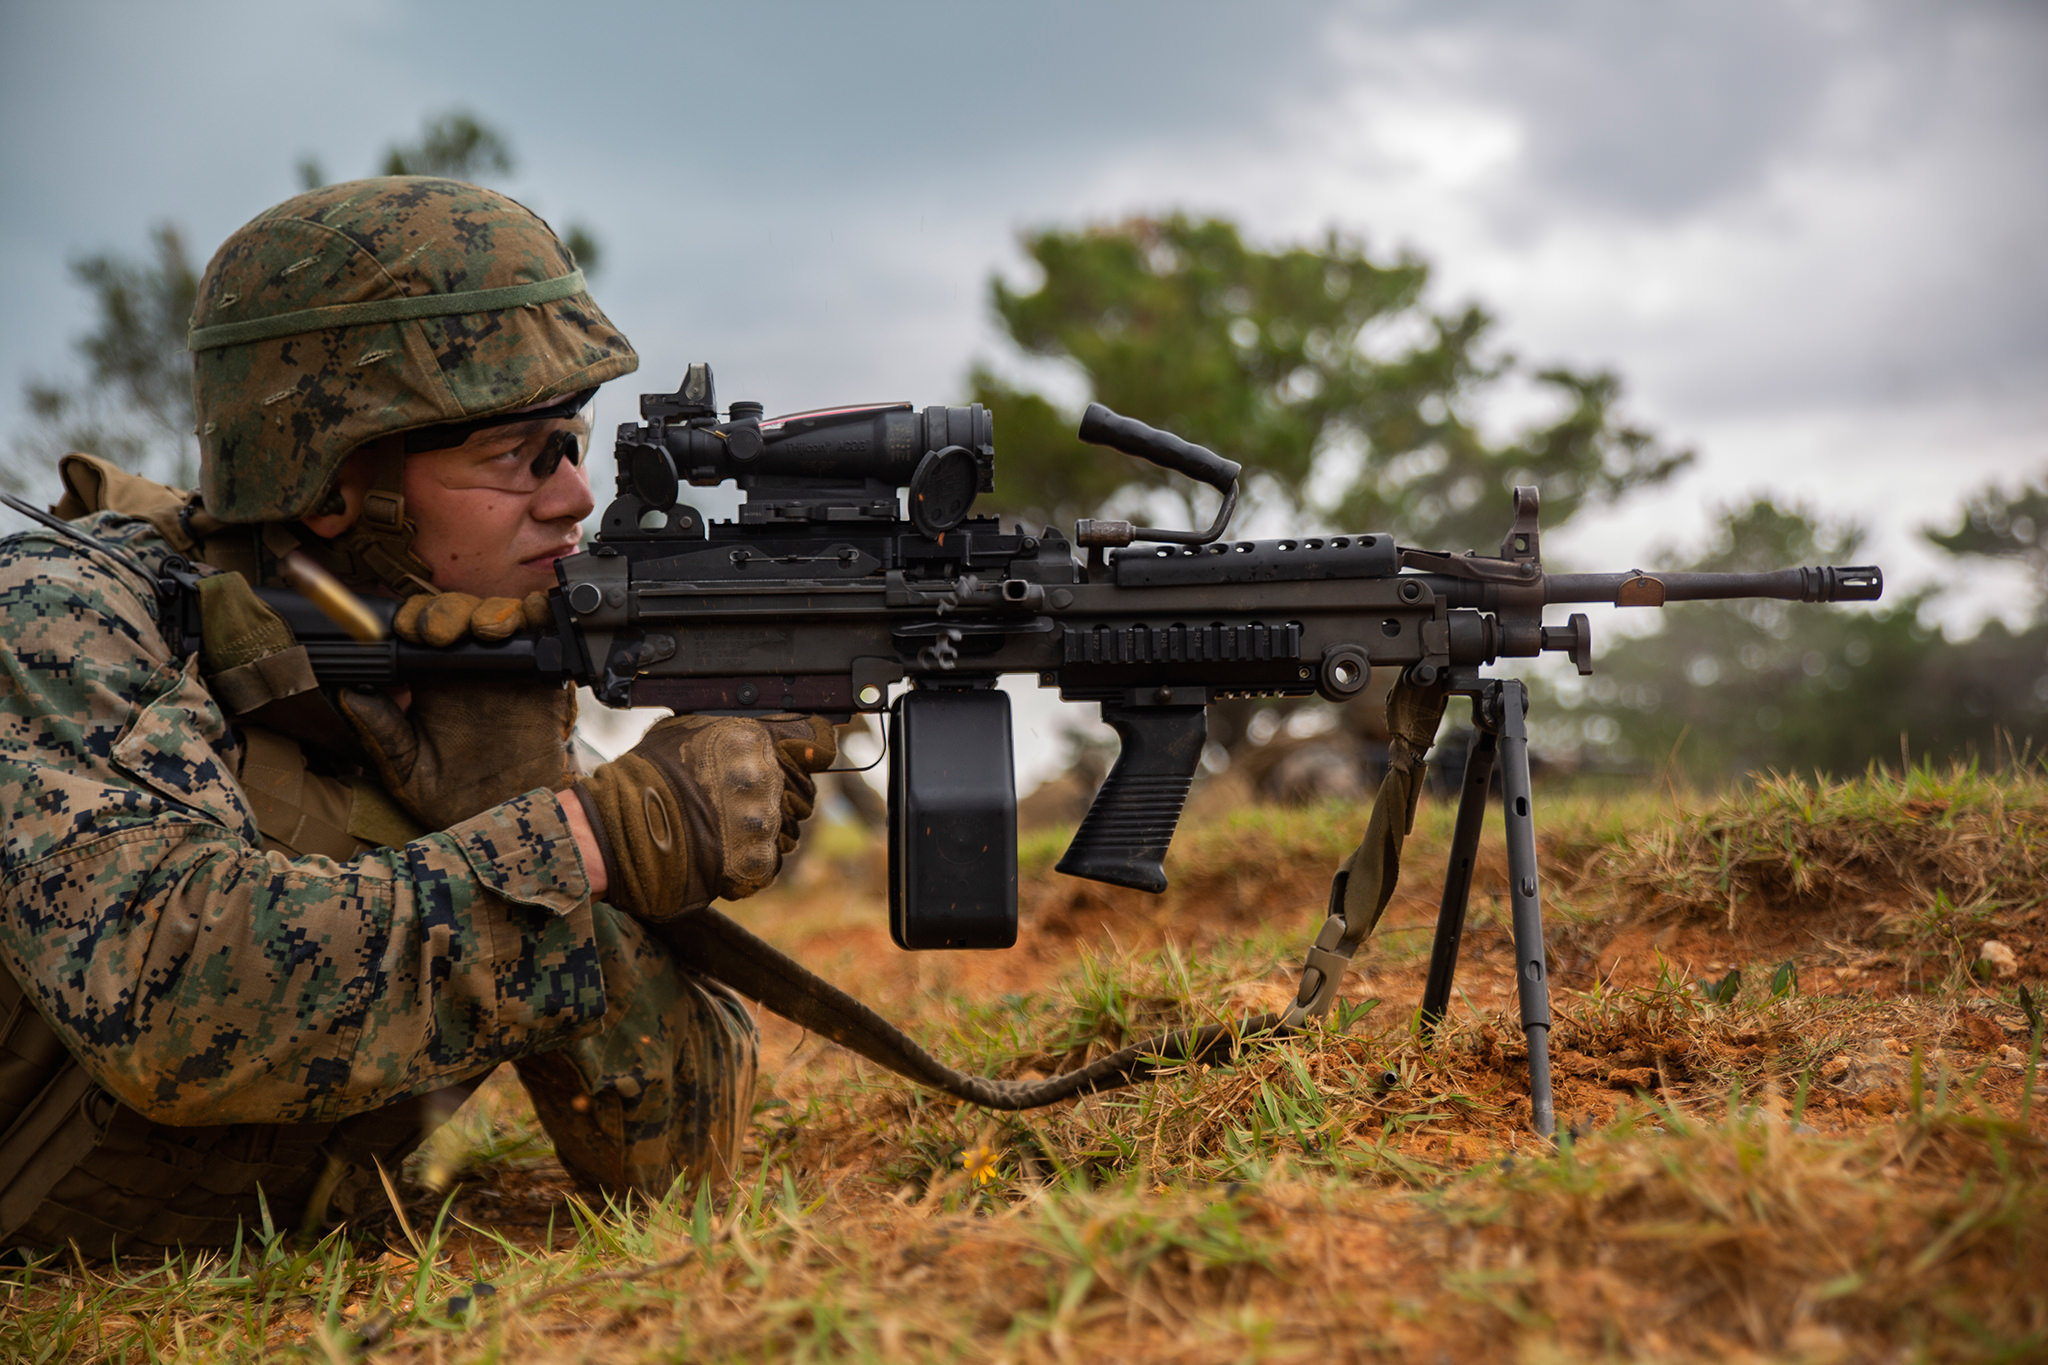 Cpl. Daniel Divirgilio fires a M249 Light Machine Gun at a target Oct. 24, 2018, during a fire and movement range at Camp Hansen, Okinawa, Japan. (Lance Cpl. Terry Wong/Marine Corps)